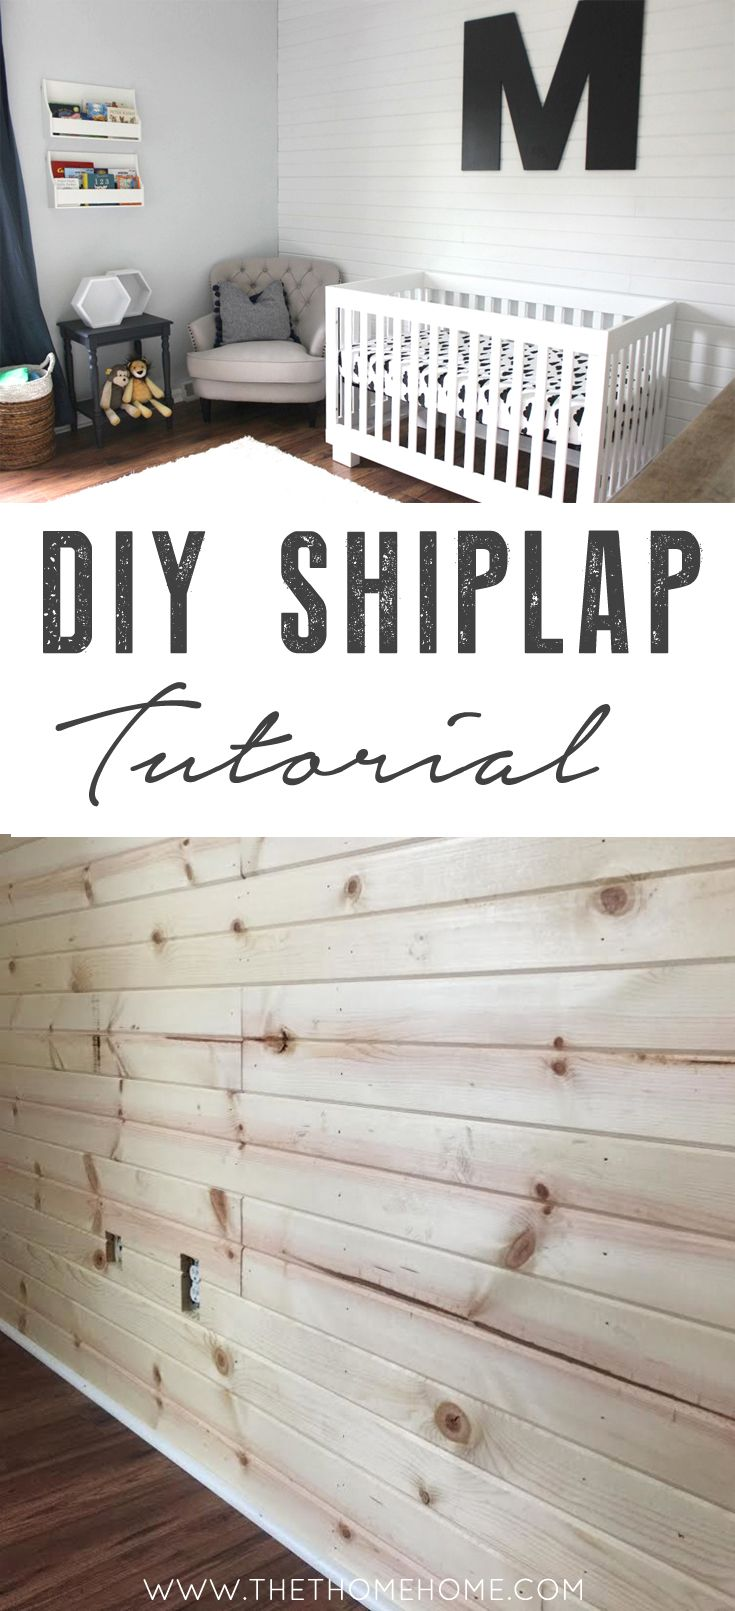 Owen s olivia whitewashed wood technique tutorial - The Easiest Diy Shiplap Tutorial Plank Wall Painted With Chalkworthy S White